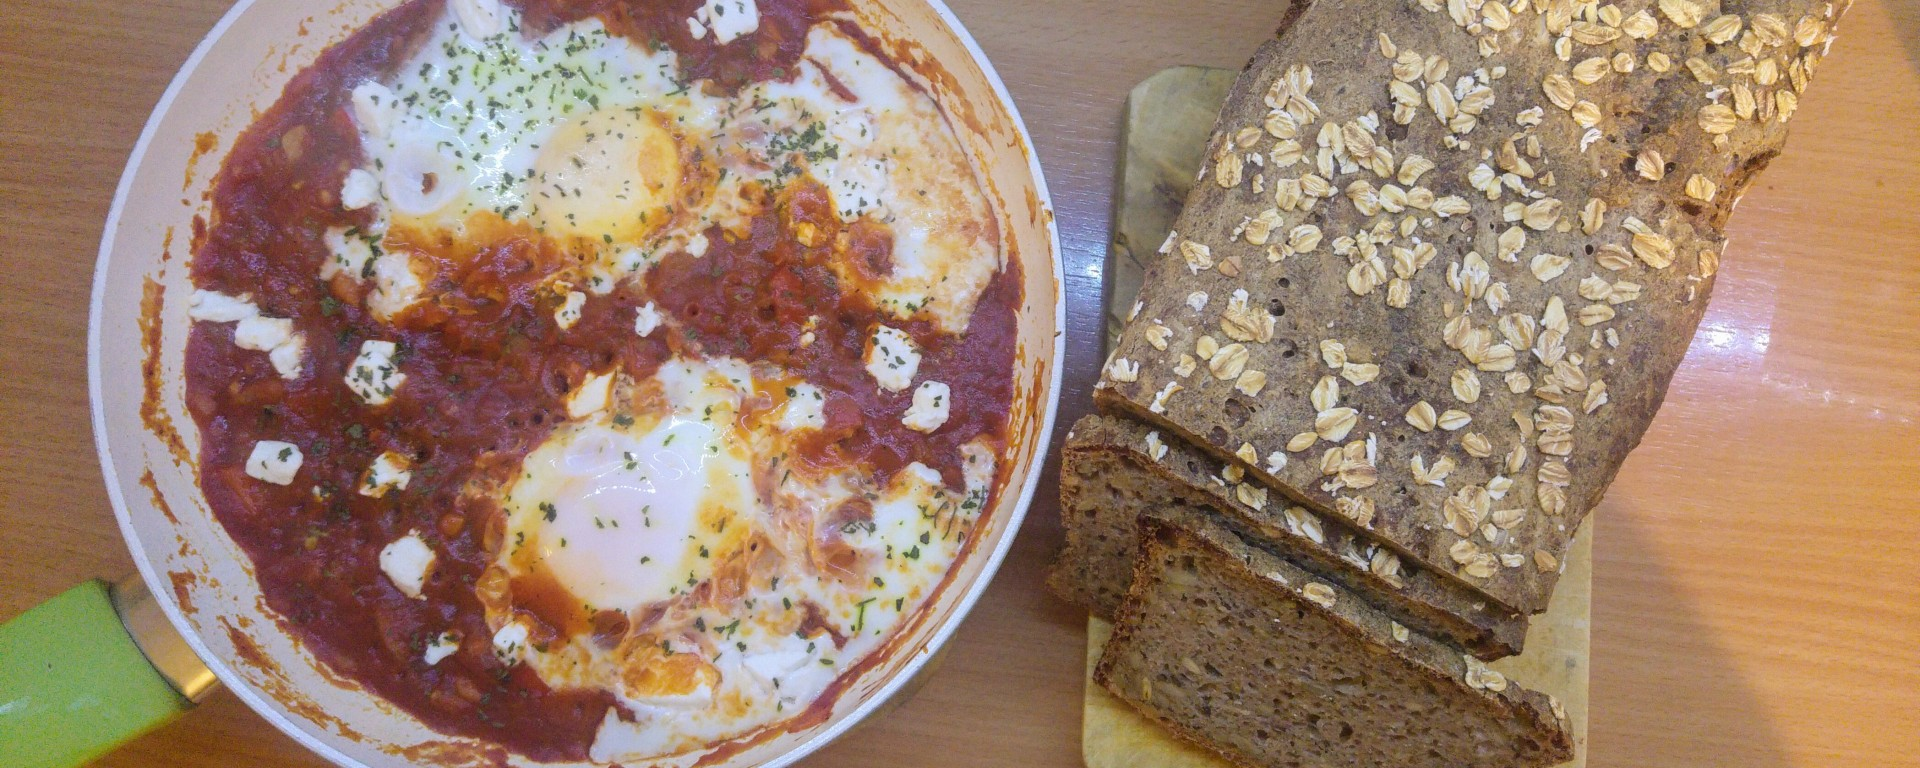 Cooked shakshuka in a pan and a loaf of sourdough bread